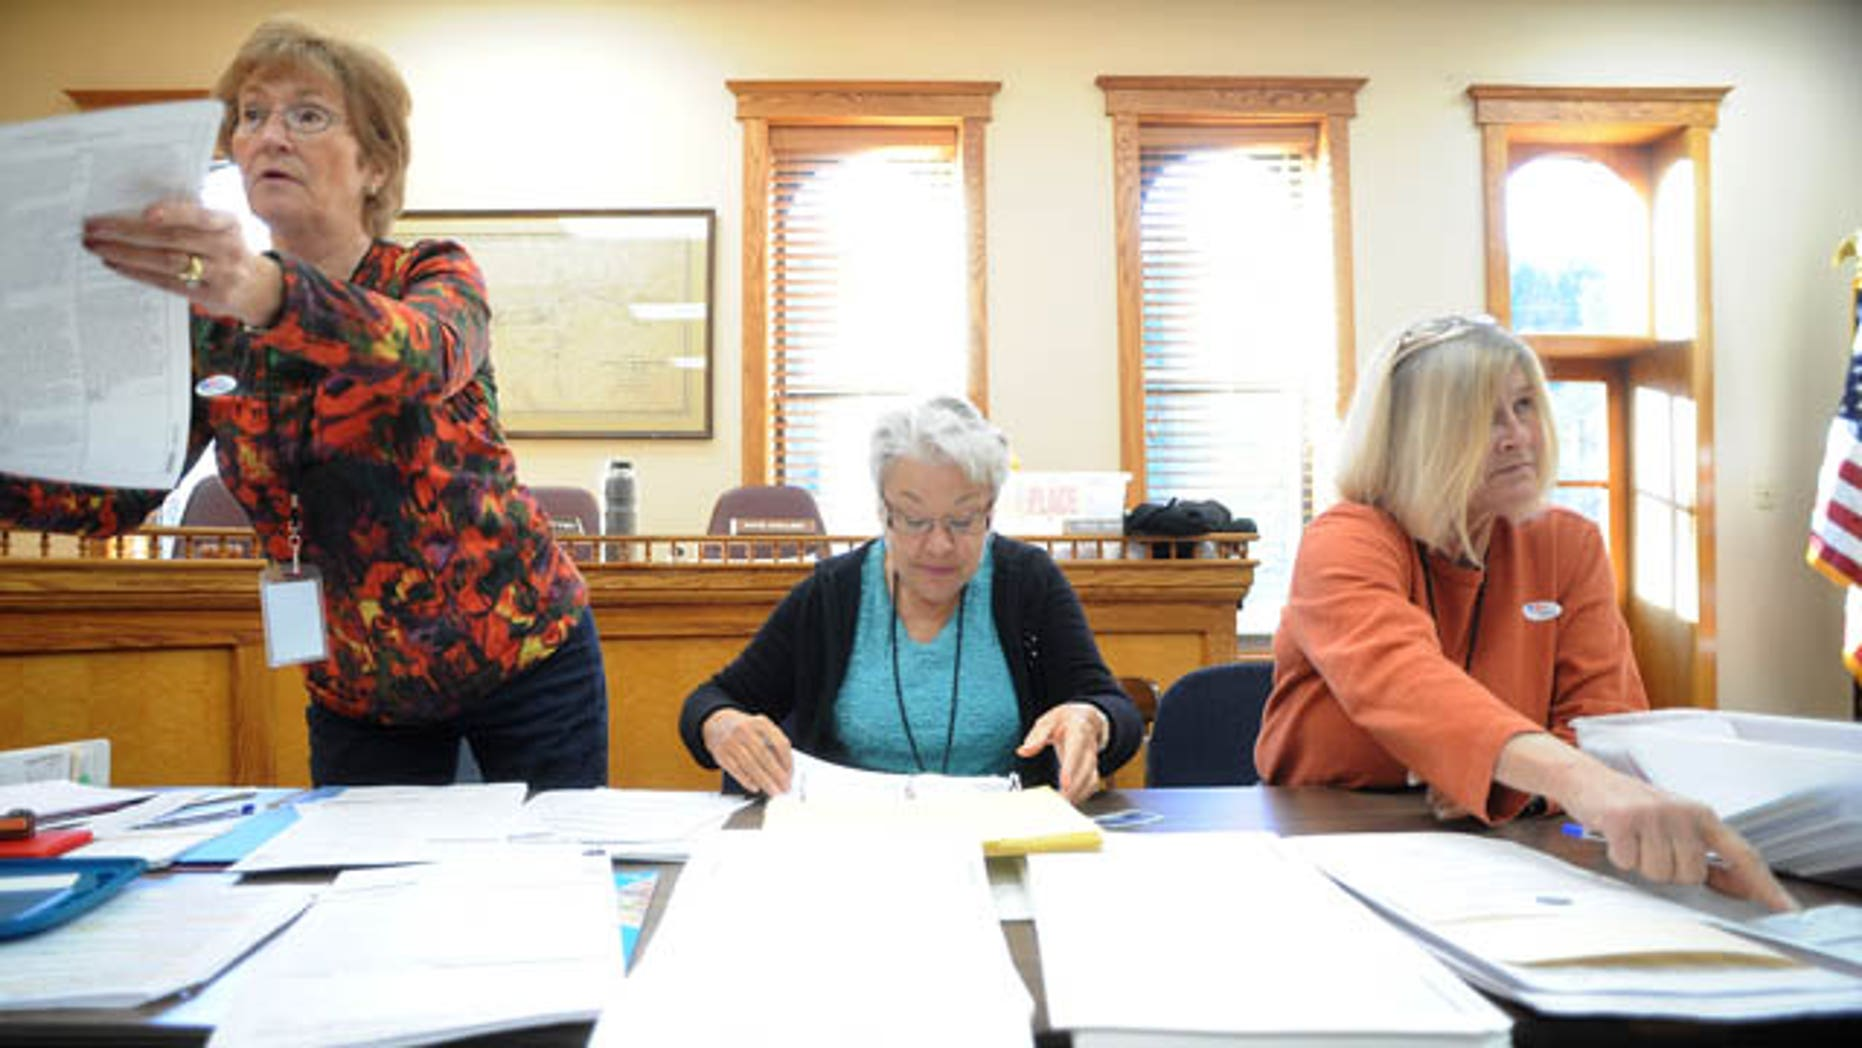 Election officials help voters at the Idaho Springs Courthouse in Idaho Springs, Colo. (AP)